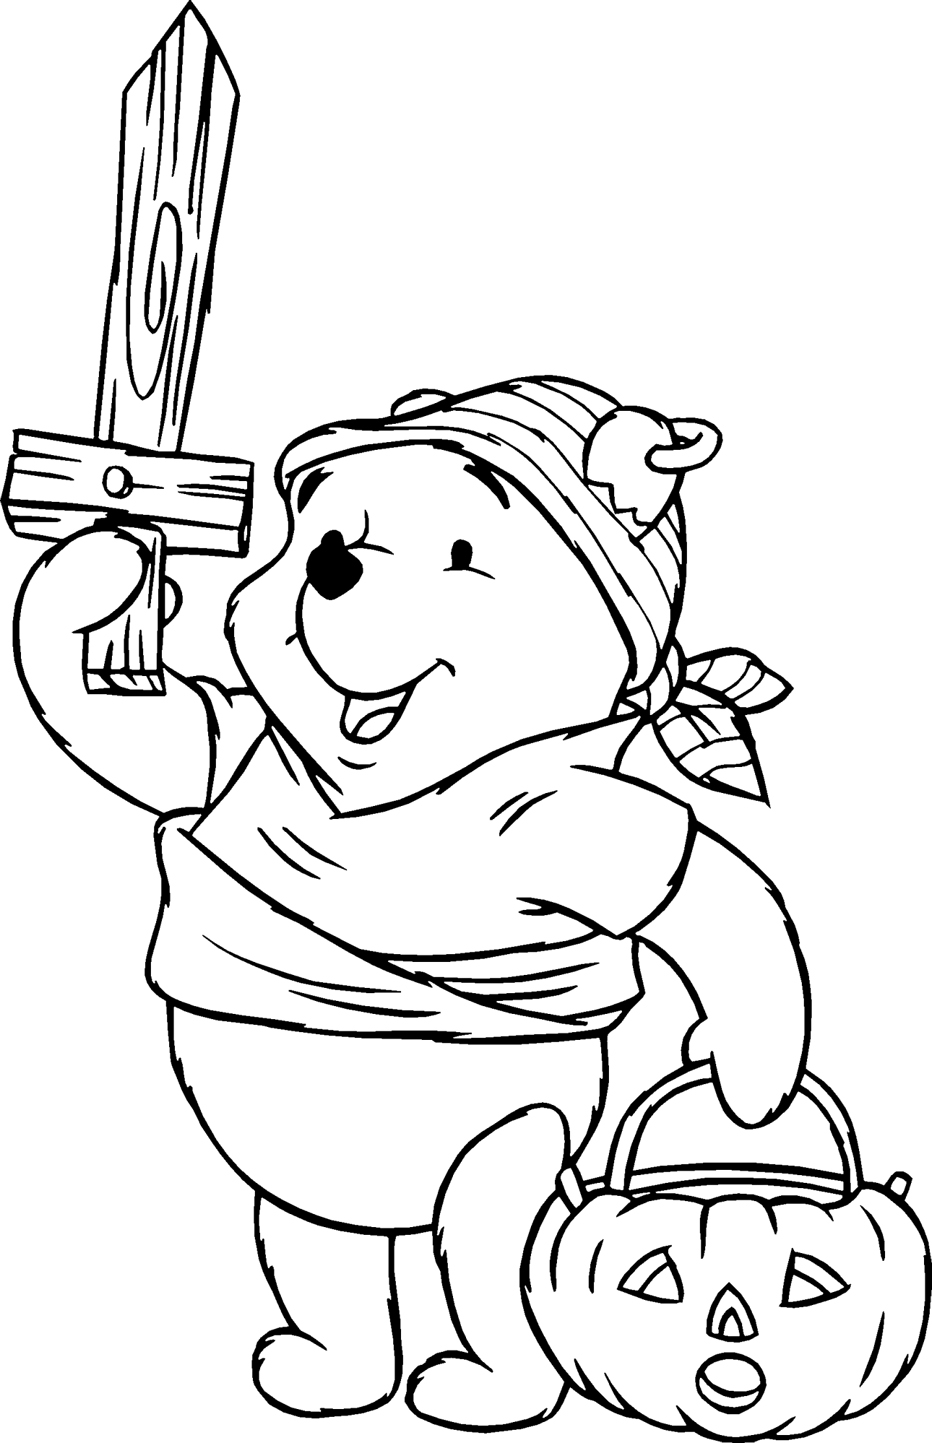 Pooh Bear Coloring Pages 8